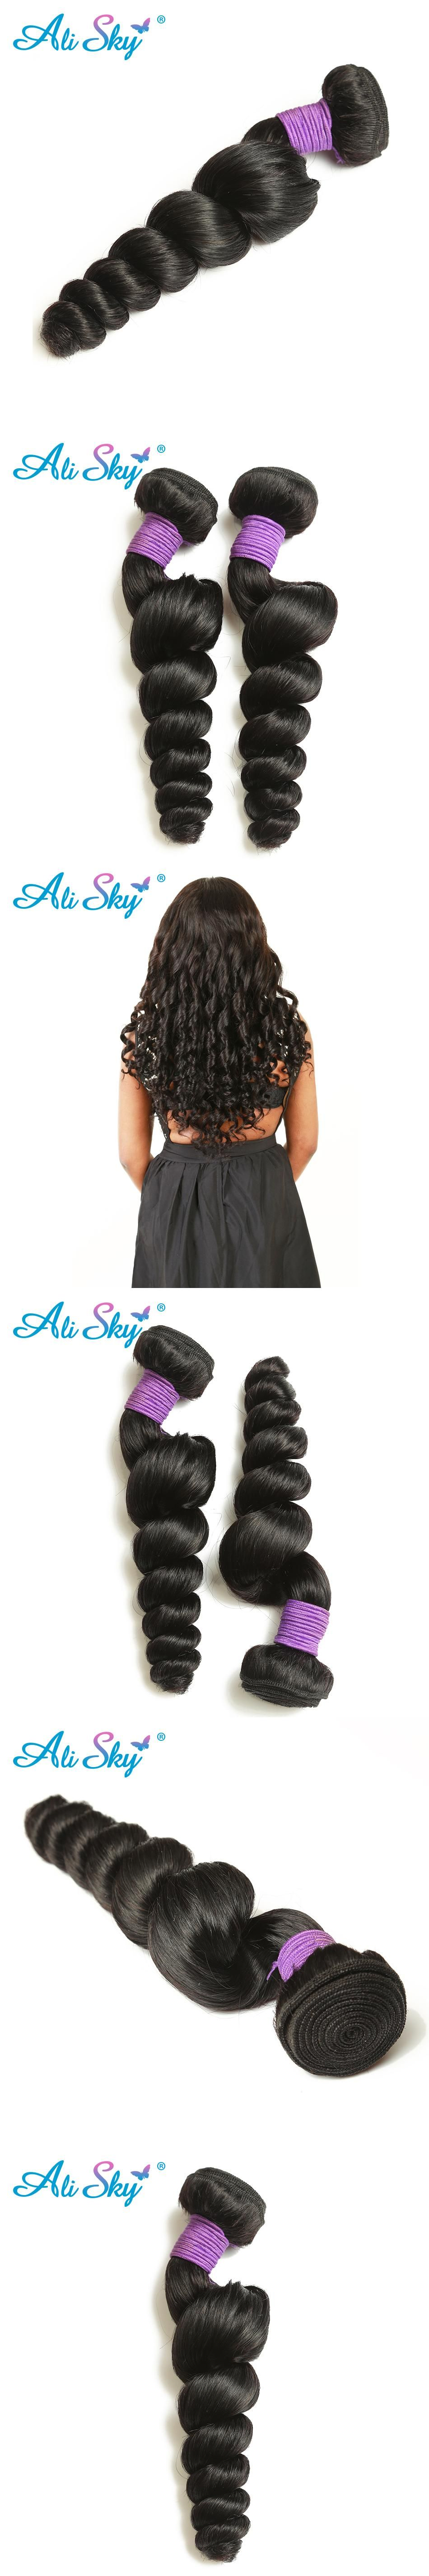 Ali Sky Brazilian Hair Weave Loose Wave Hair Extension 1pclot 100